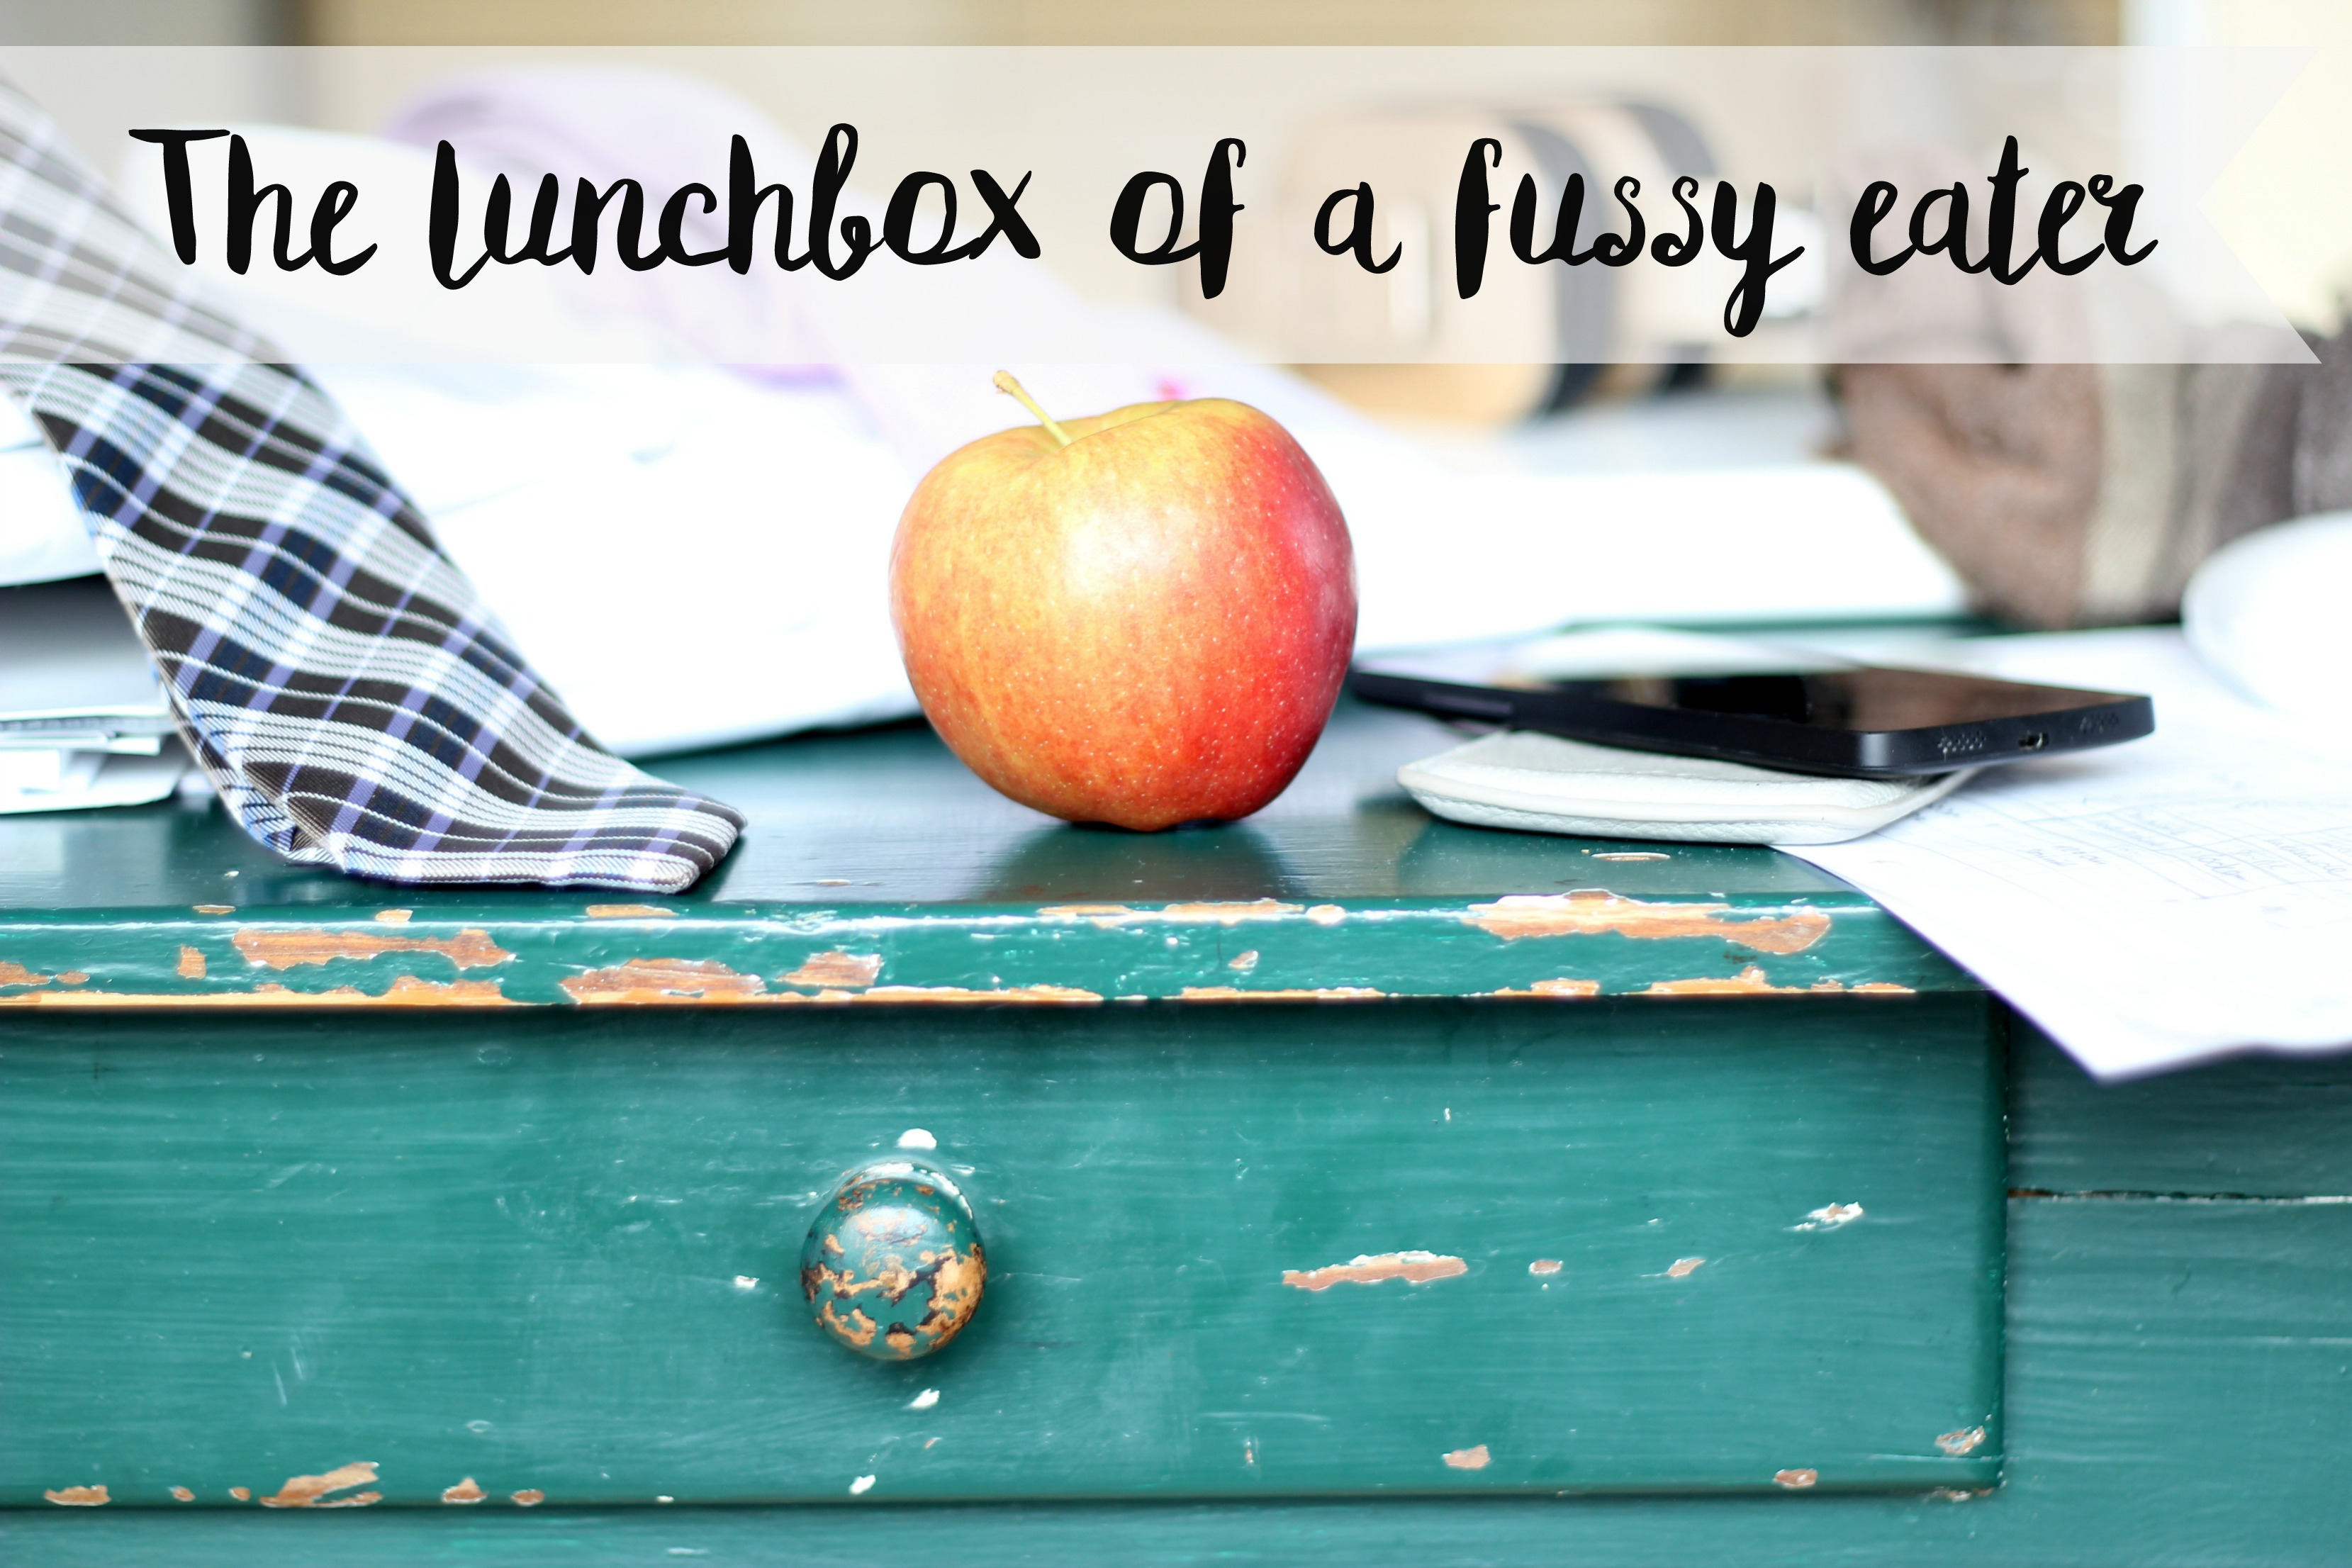 The lunchbox of a fussy eater